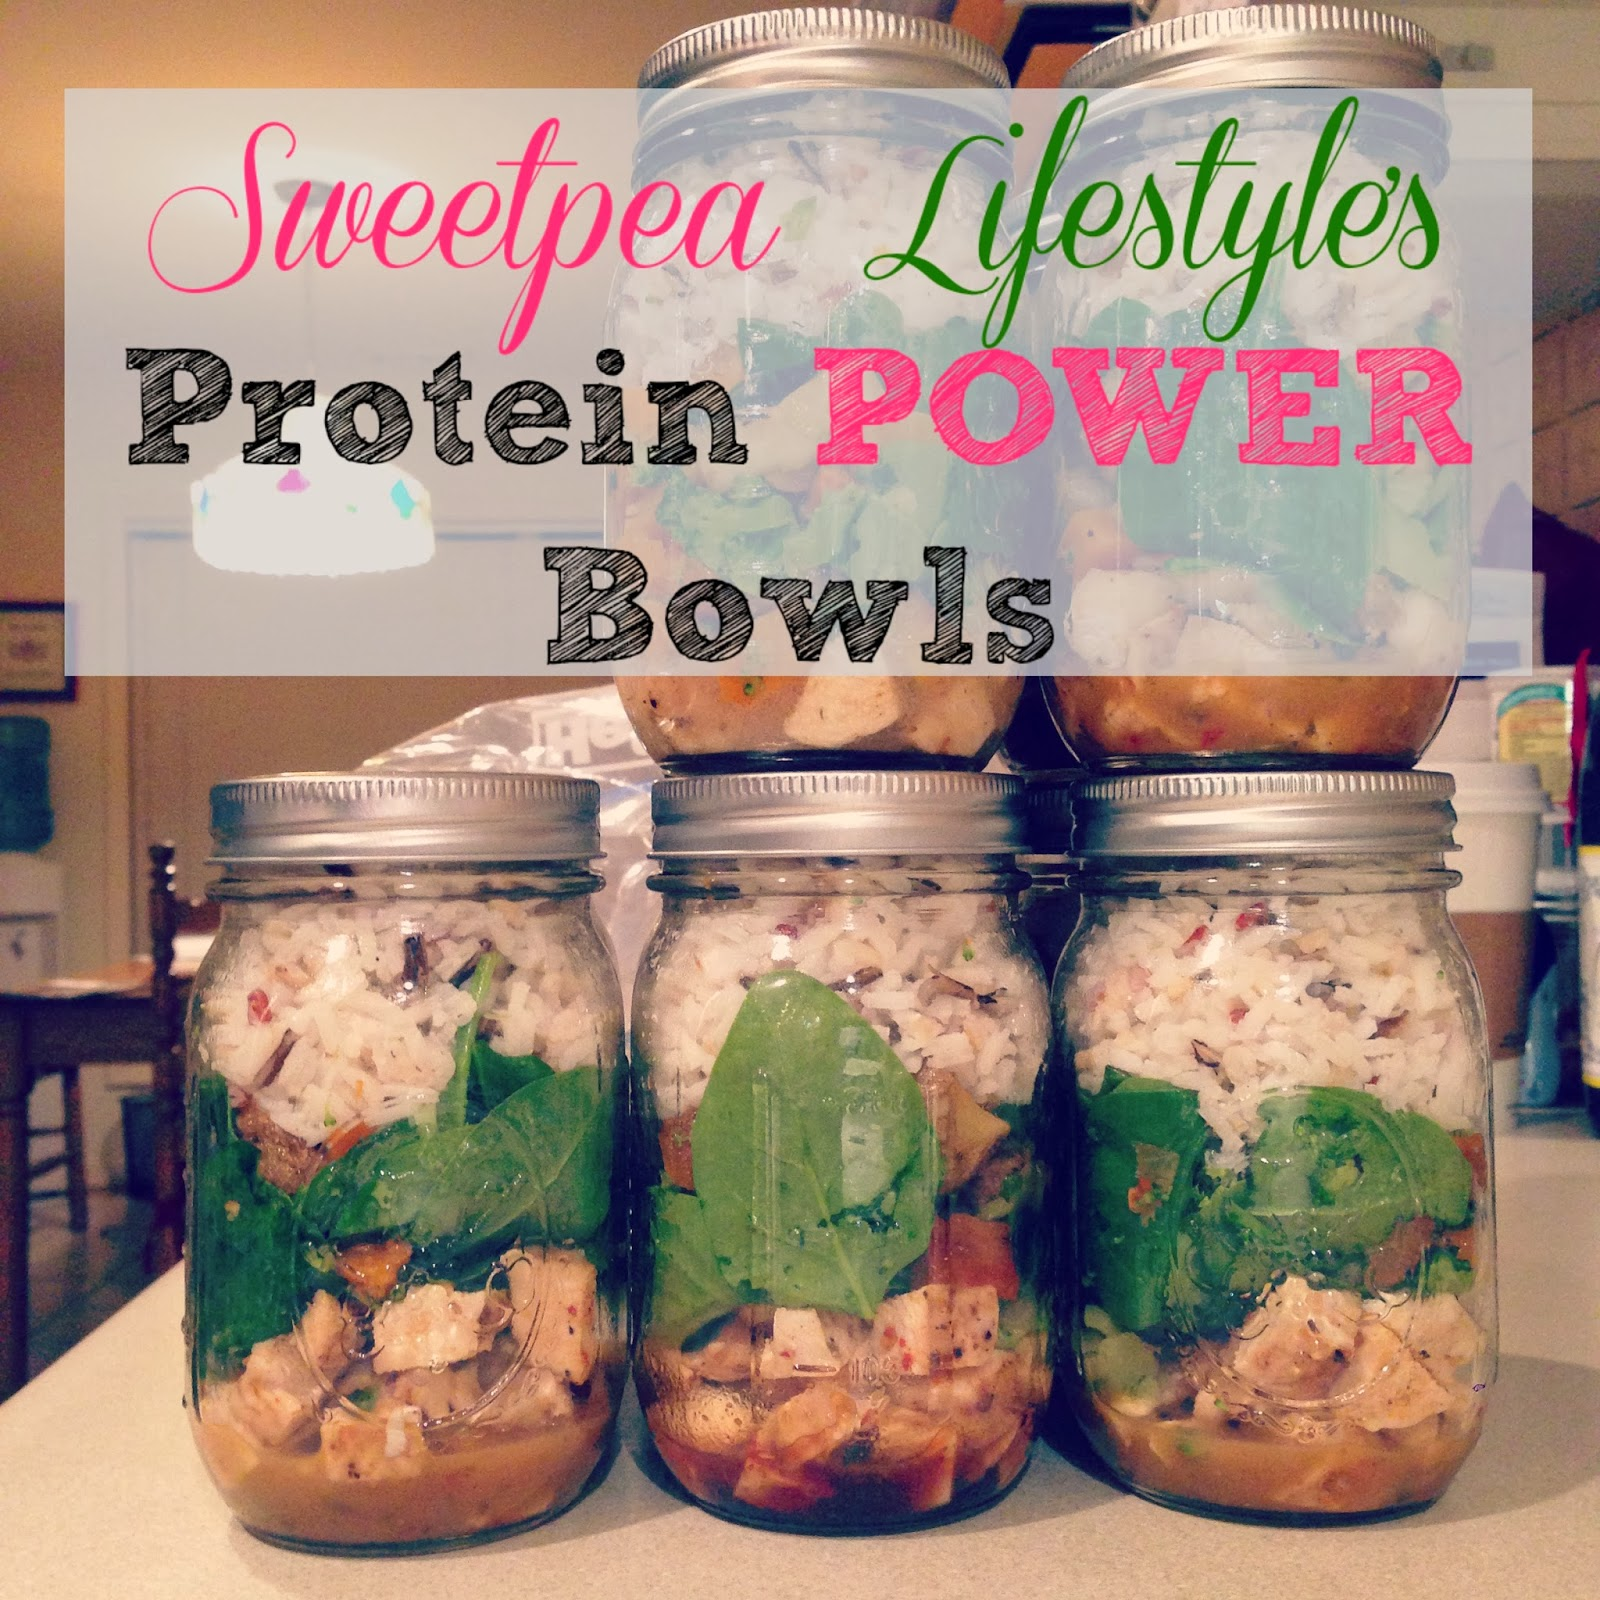 Protein Power Bowls!